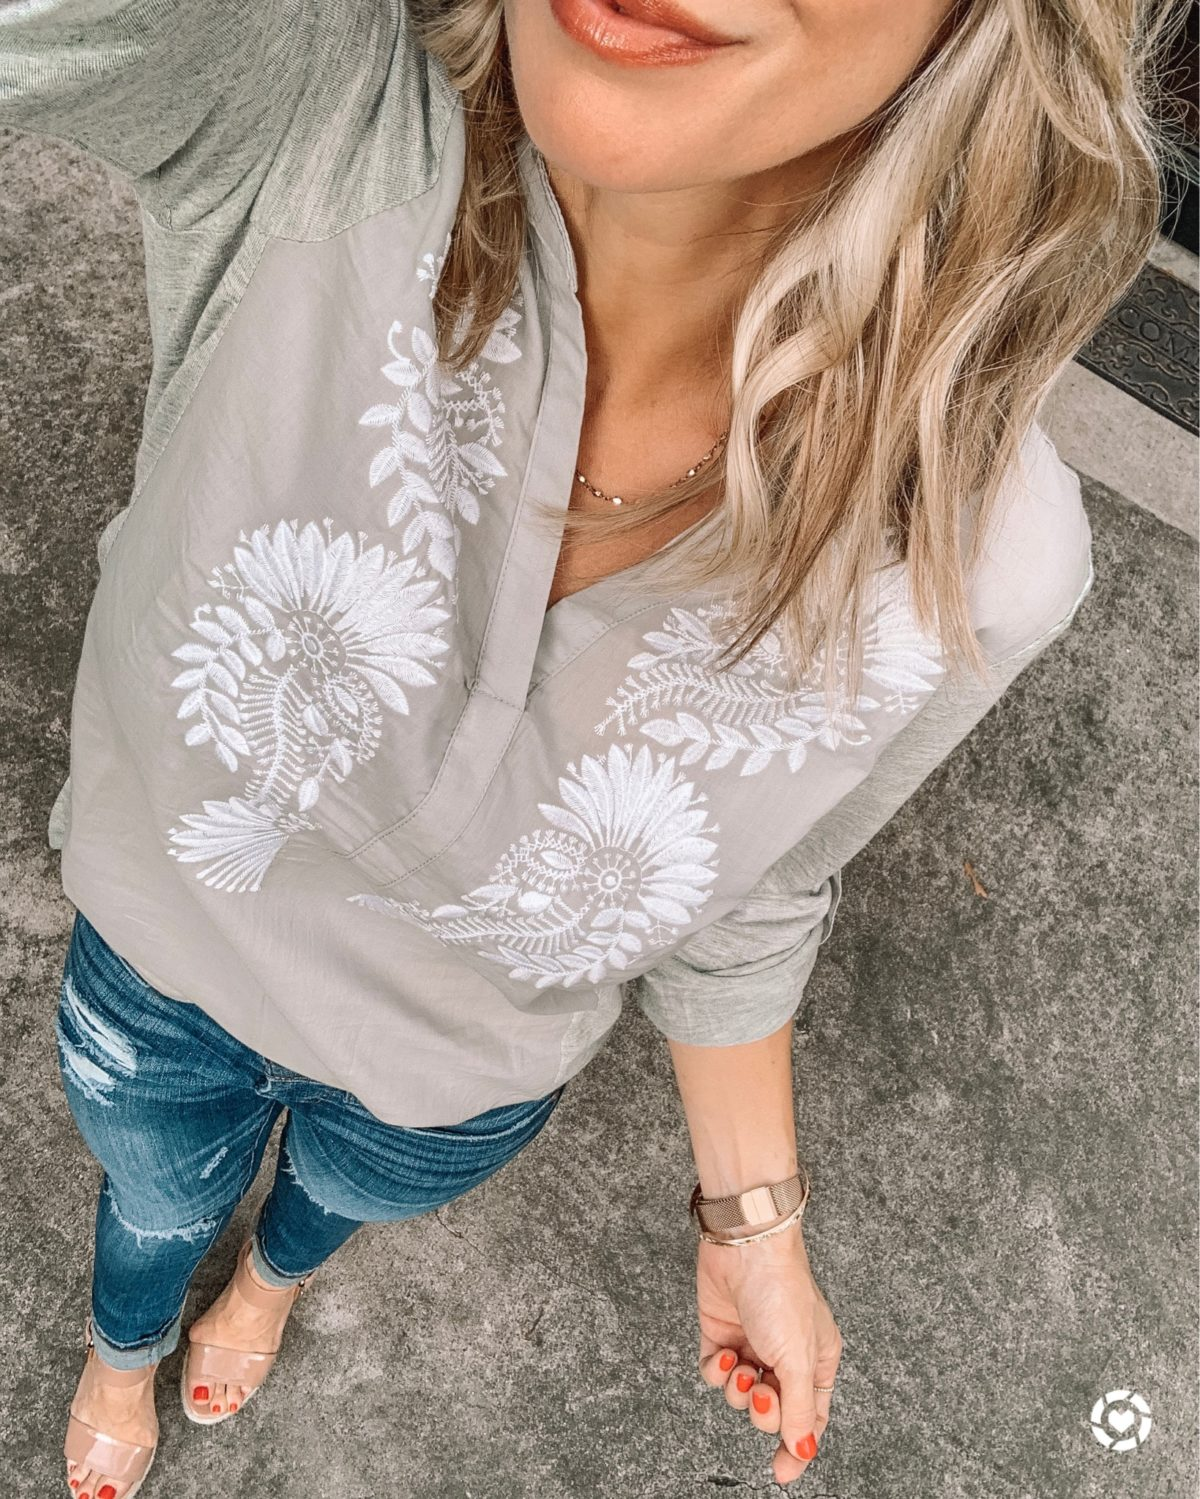 Amazon Fashion Prime Day Haul - grey and white embroidered top with jeans